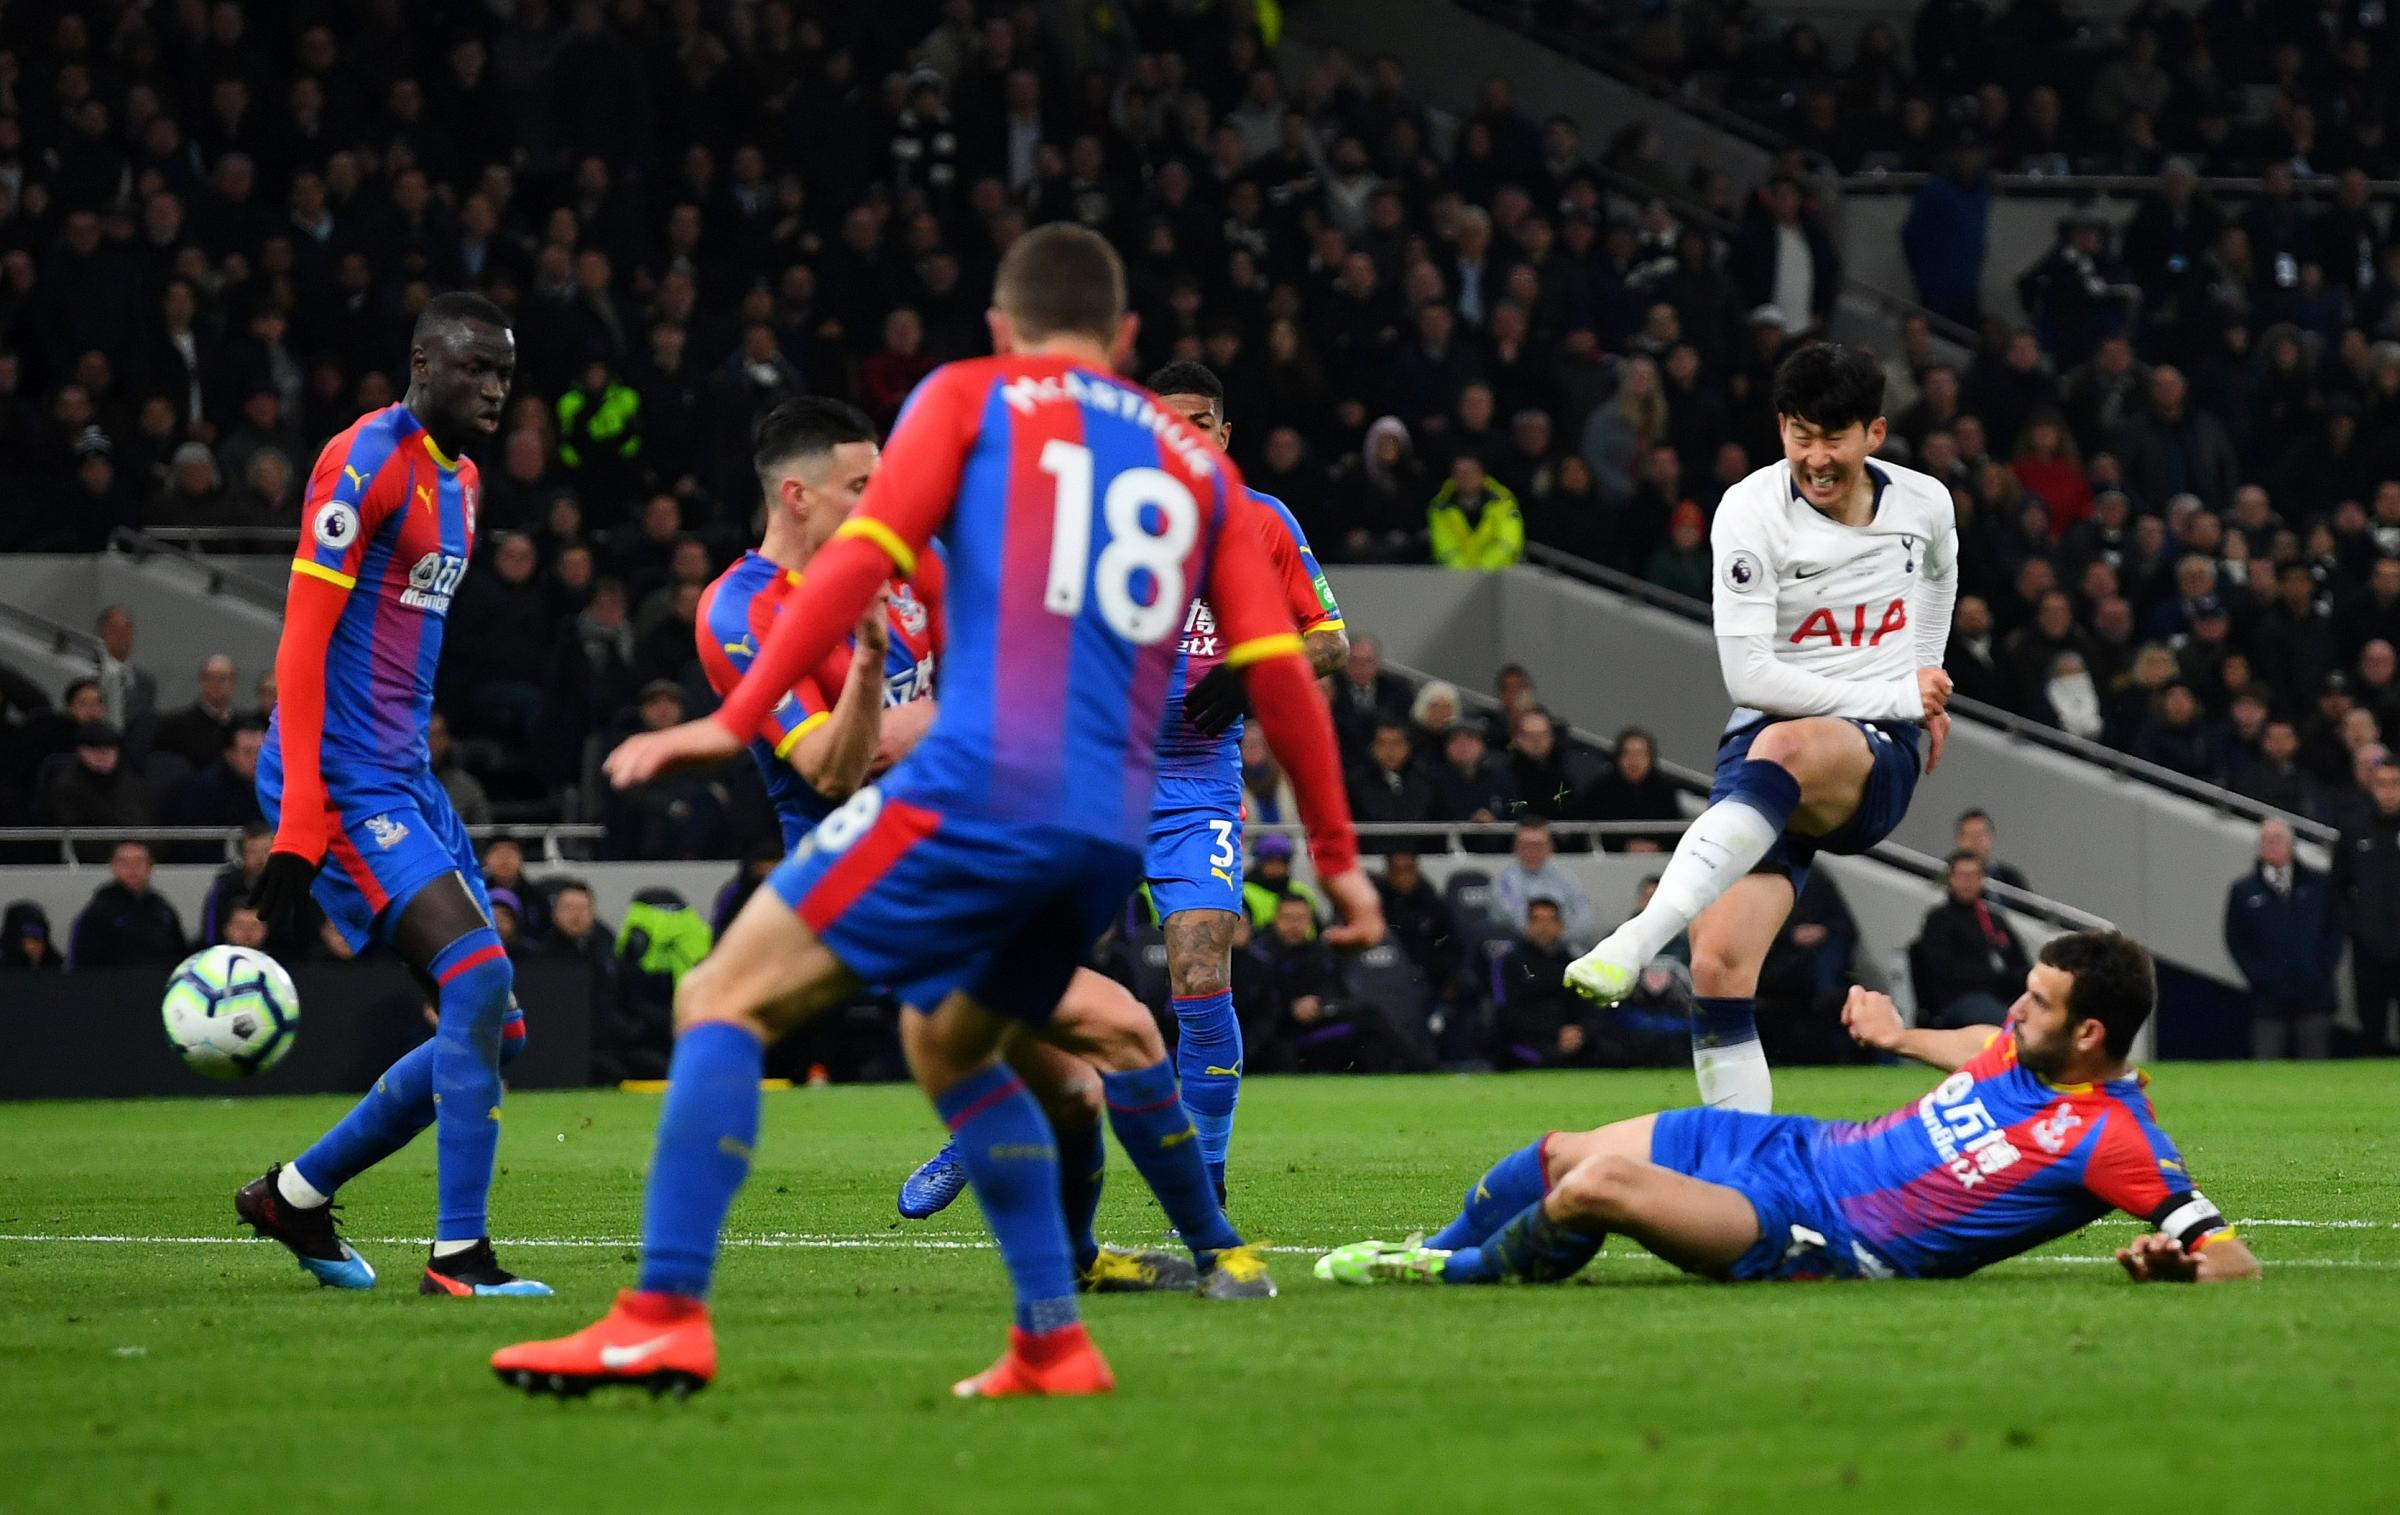 Son Hueng-min creates his own piece of history by scoring the first goal at Spurs' new home. Picture: Action Images